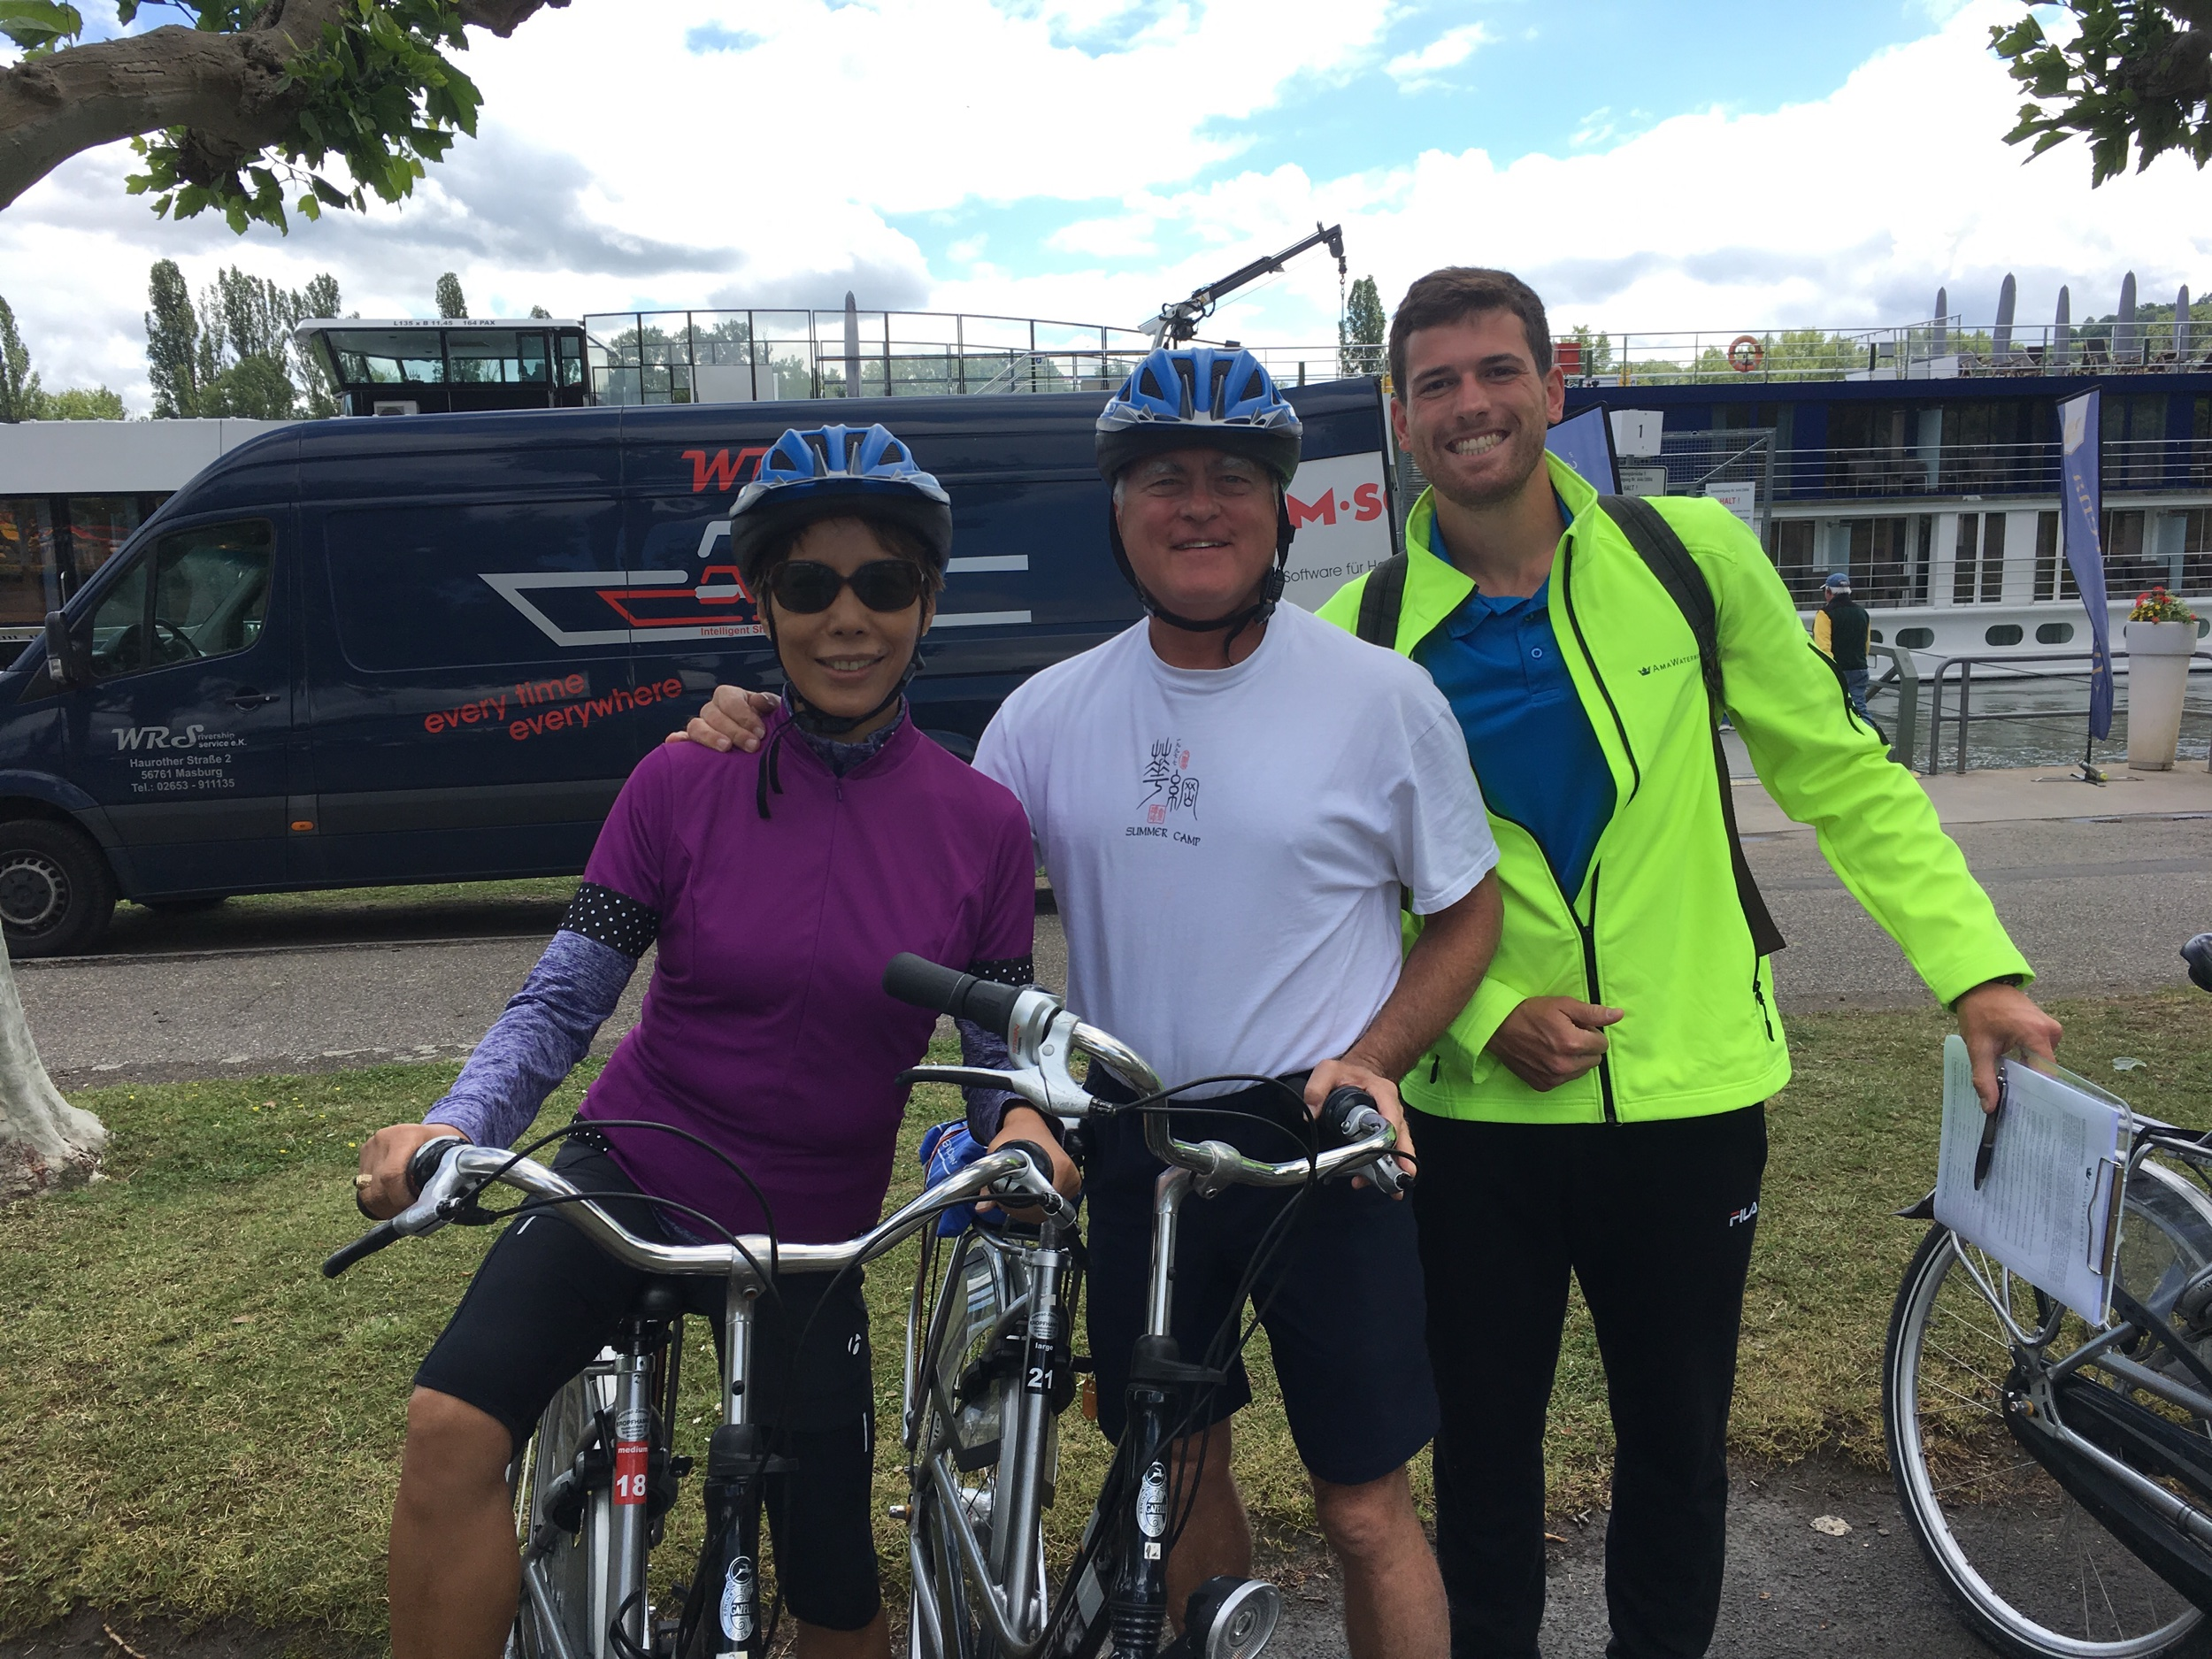 Jane, Len and Marcelo getting ready for a bike tour.